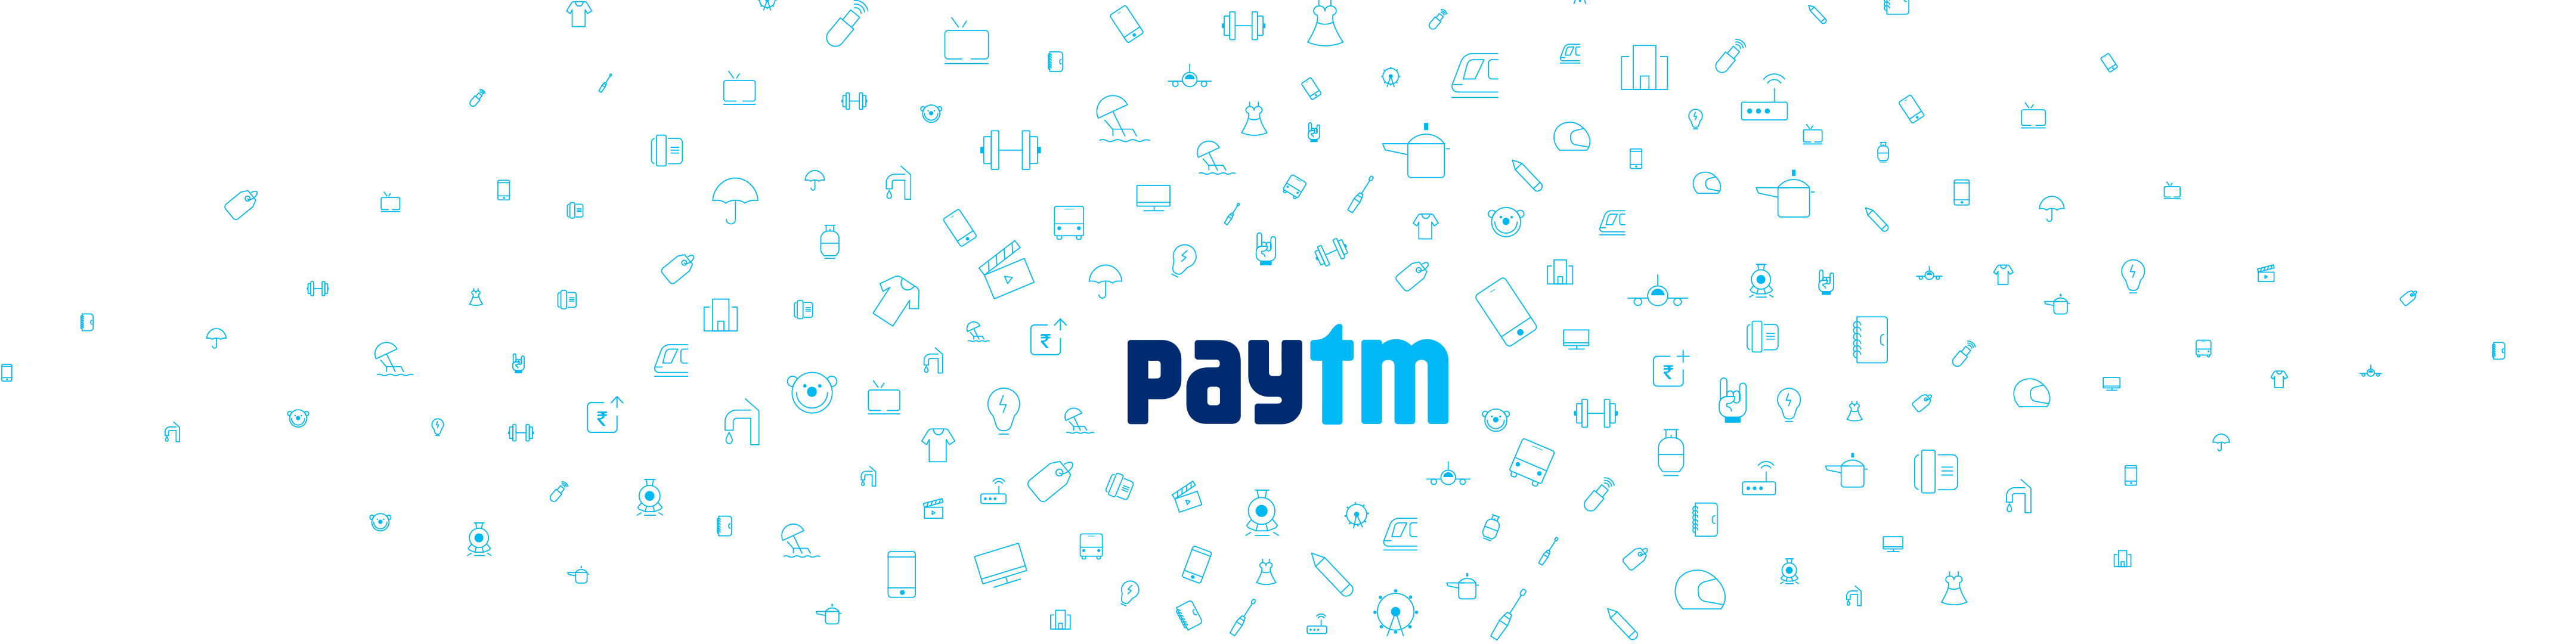 Paytm- Payments & Bank Account - Revenue & Download